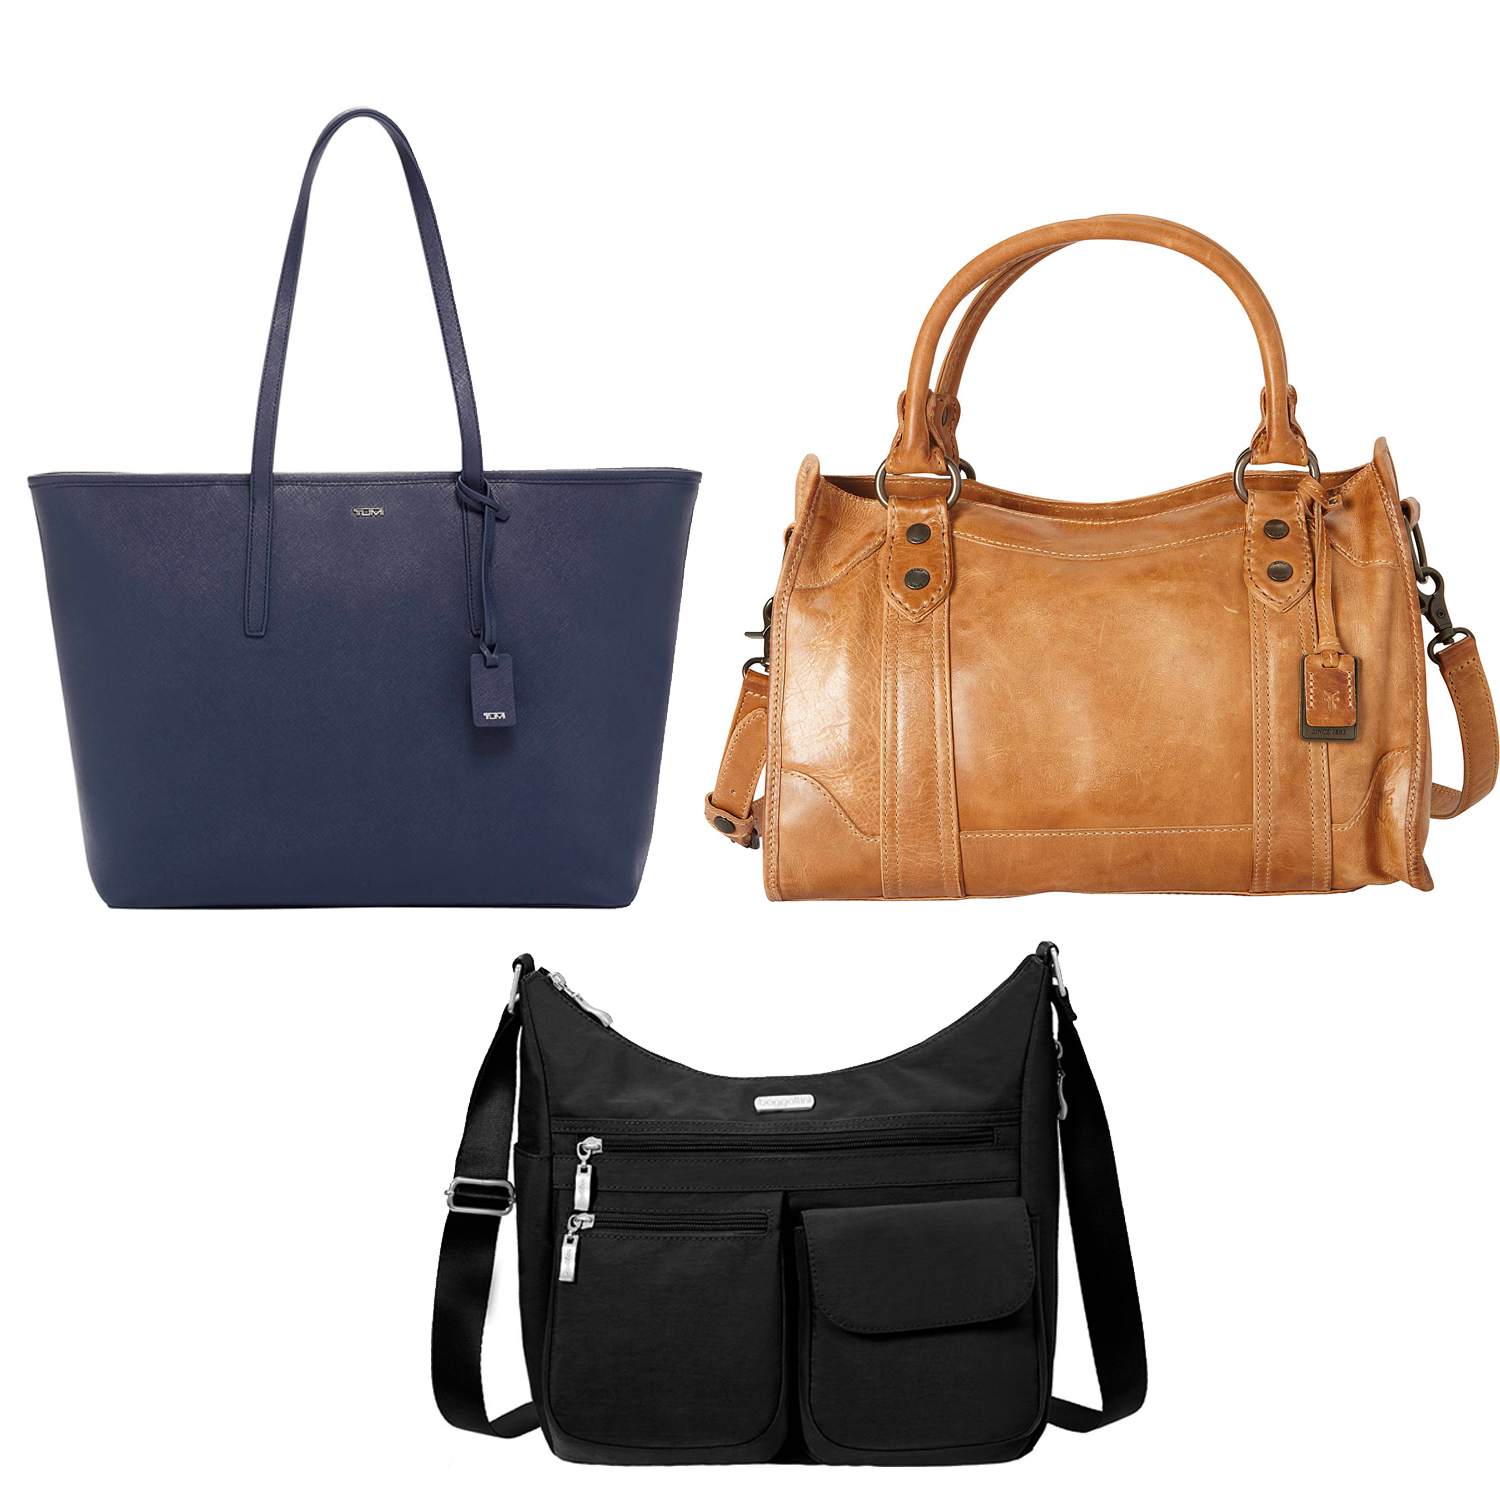 Best Handbag Deals